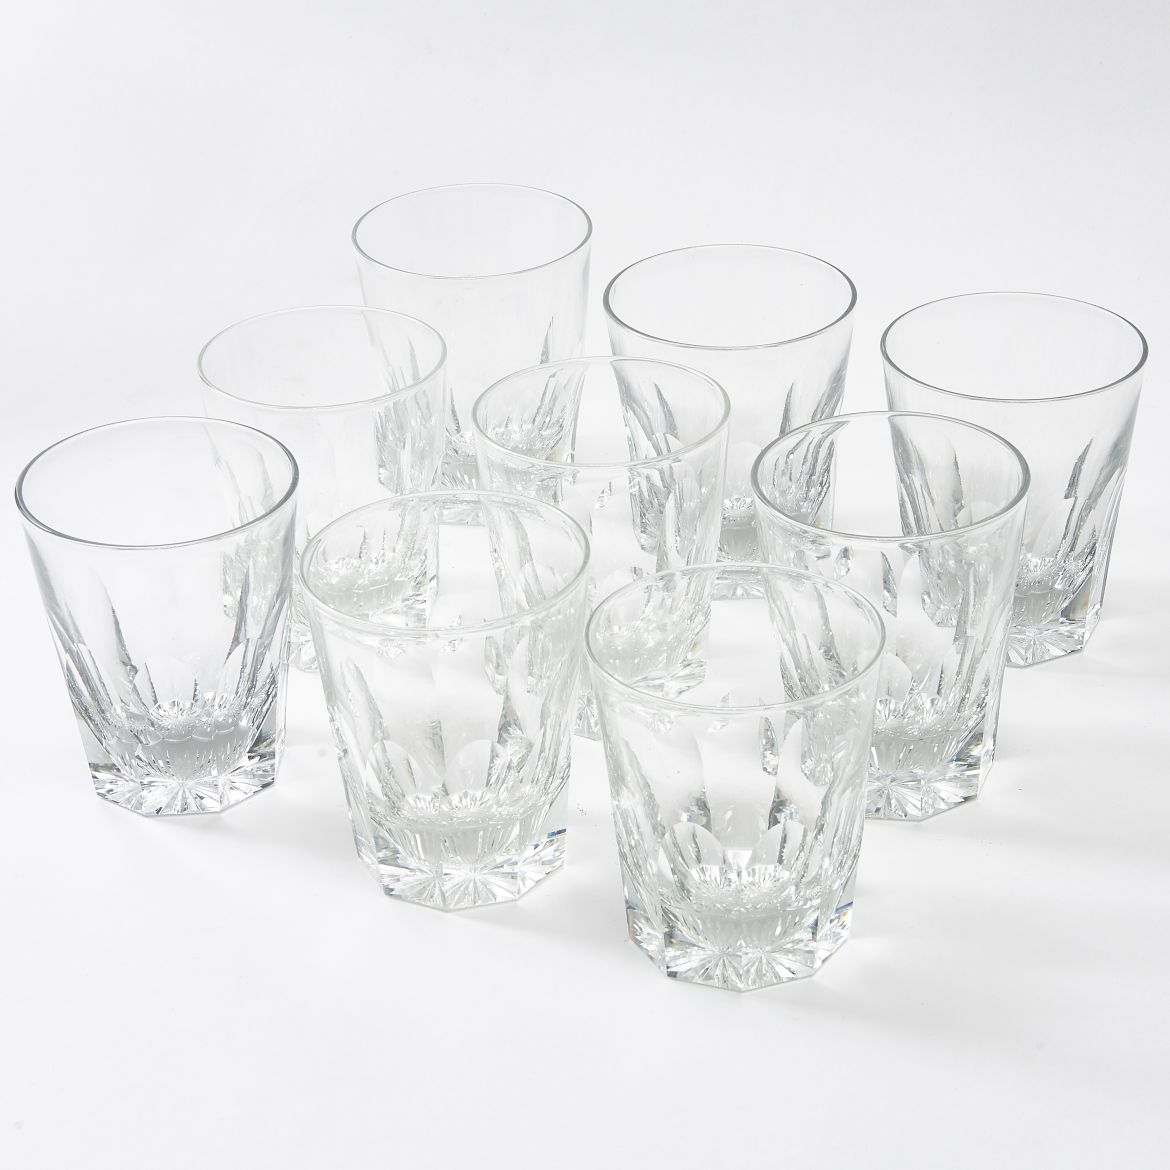 Set 9 Royal Yacht Tumblers